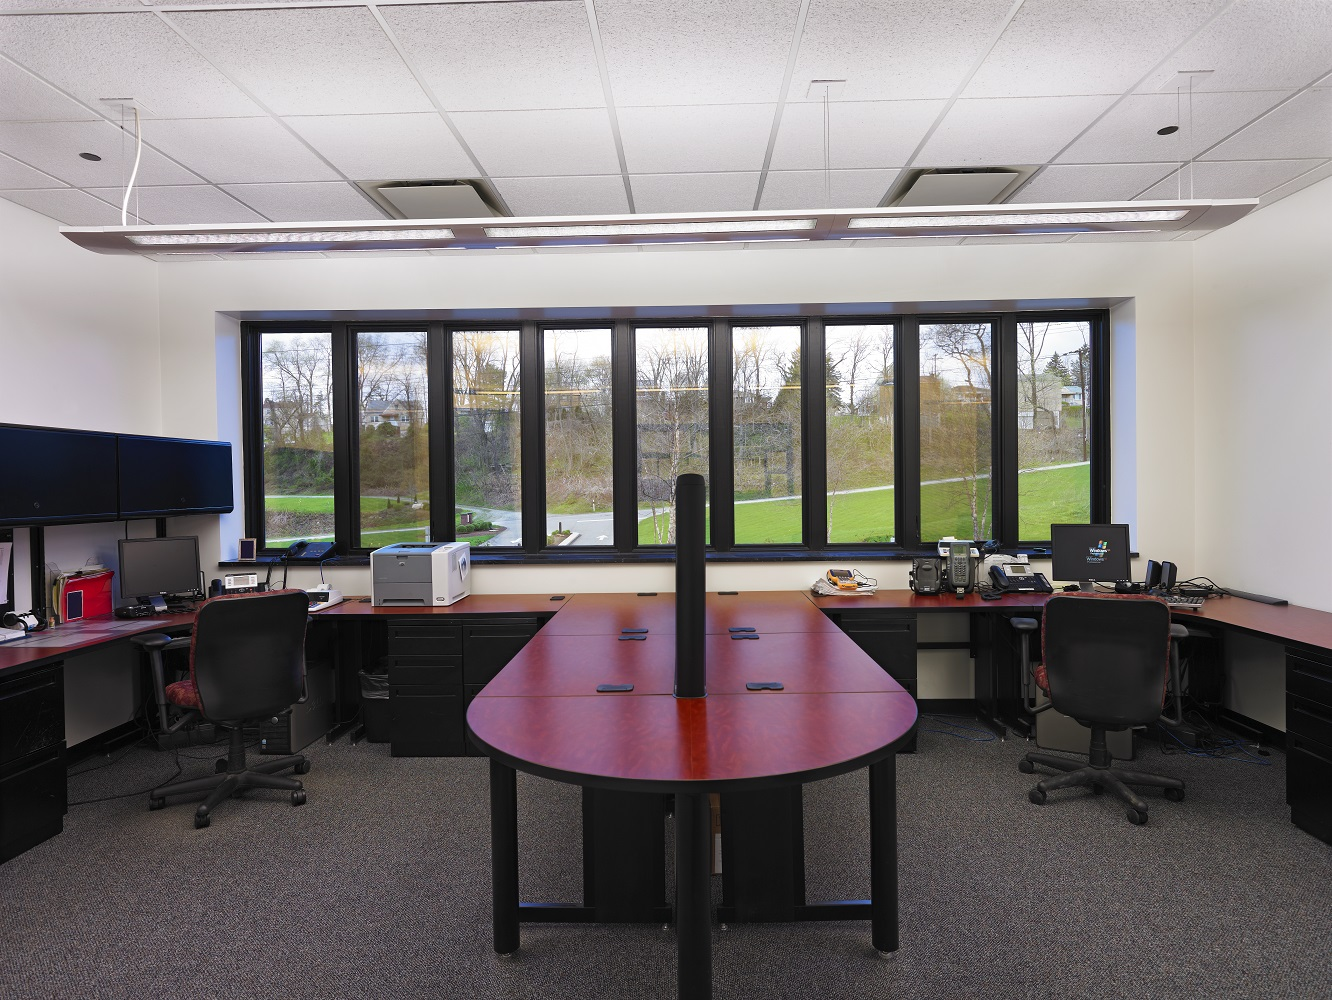 Interior(23) - Windowed Office Room.jpg